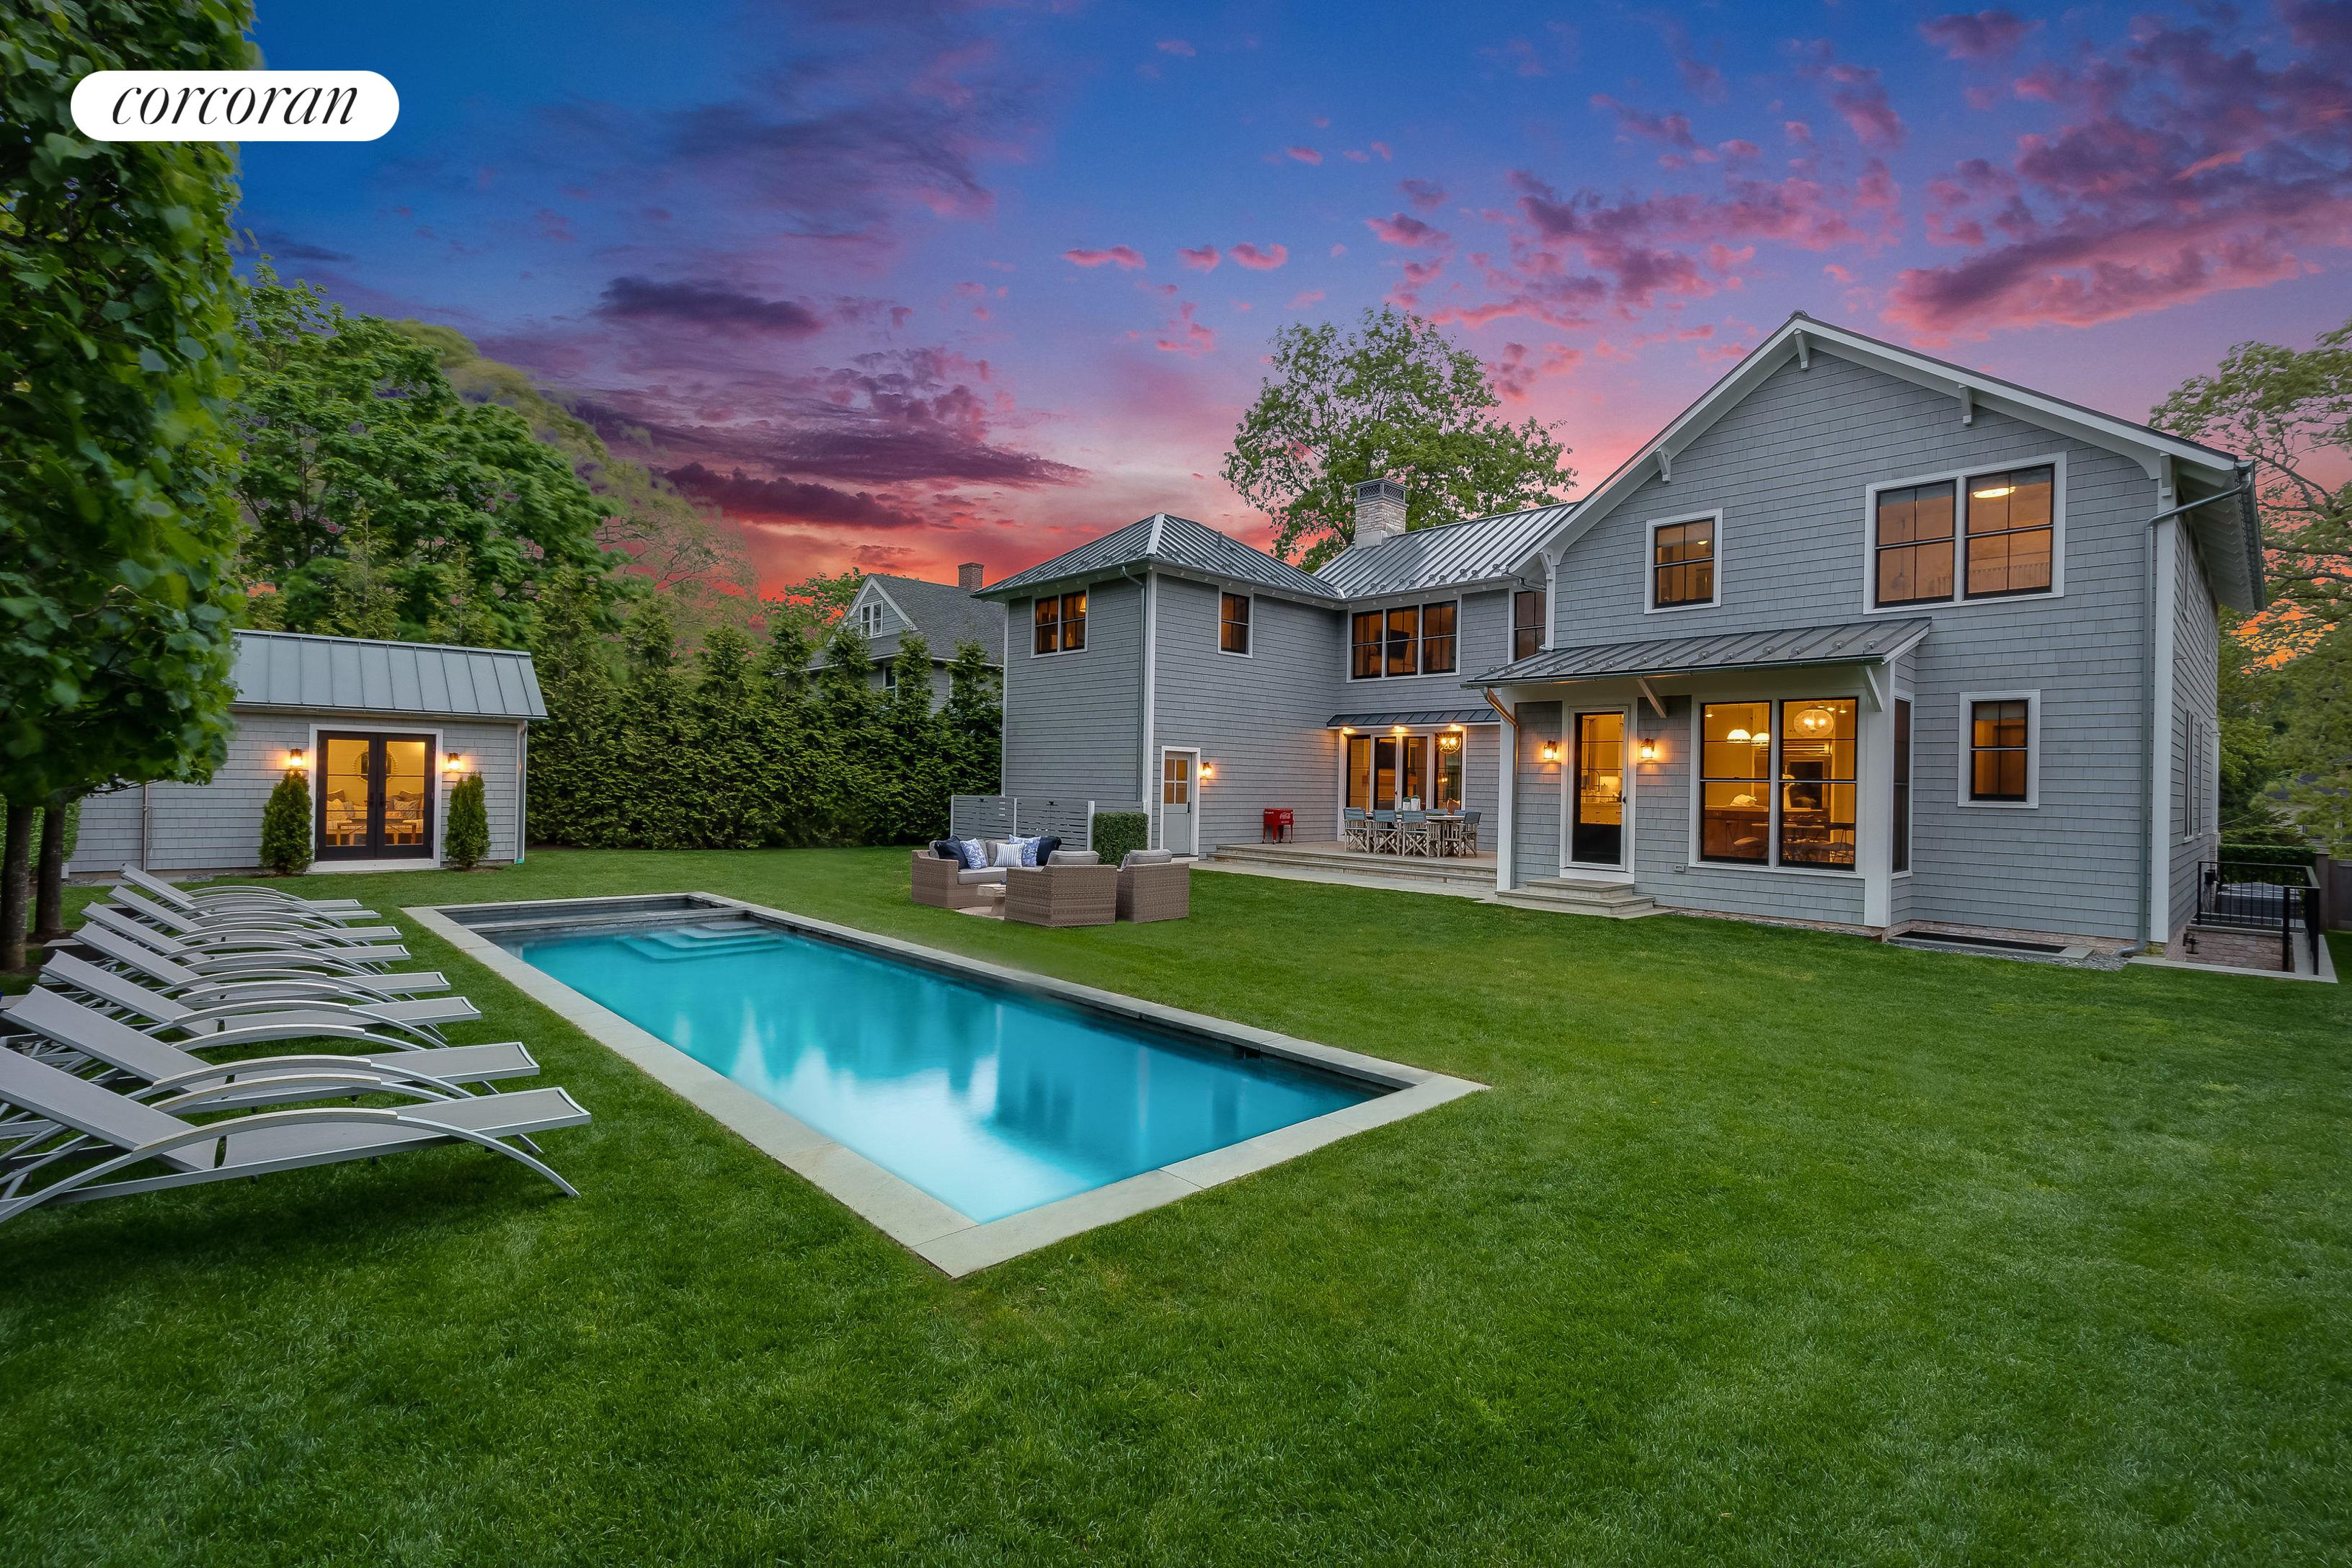 51 Palmer Ter, Beautiful yard with pool and pool house